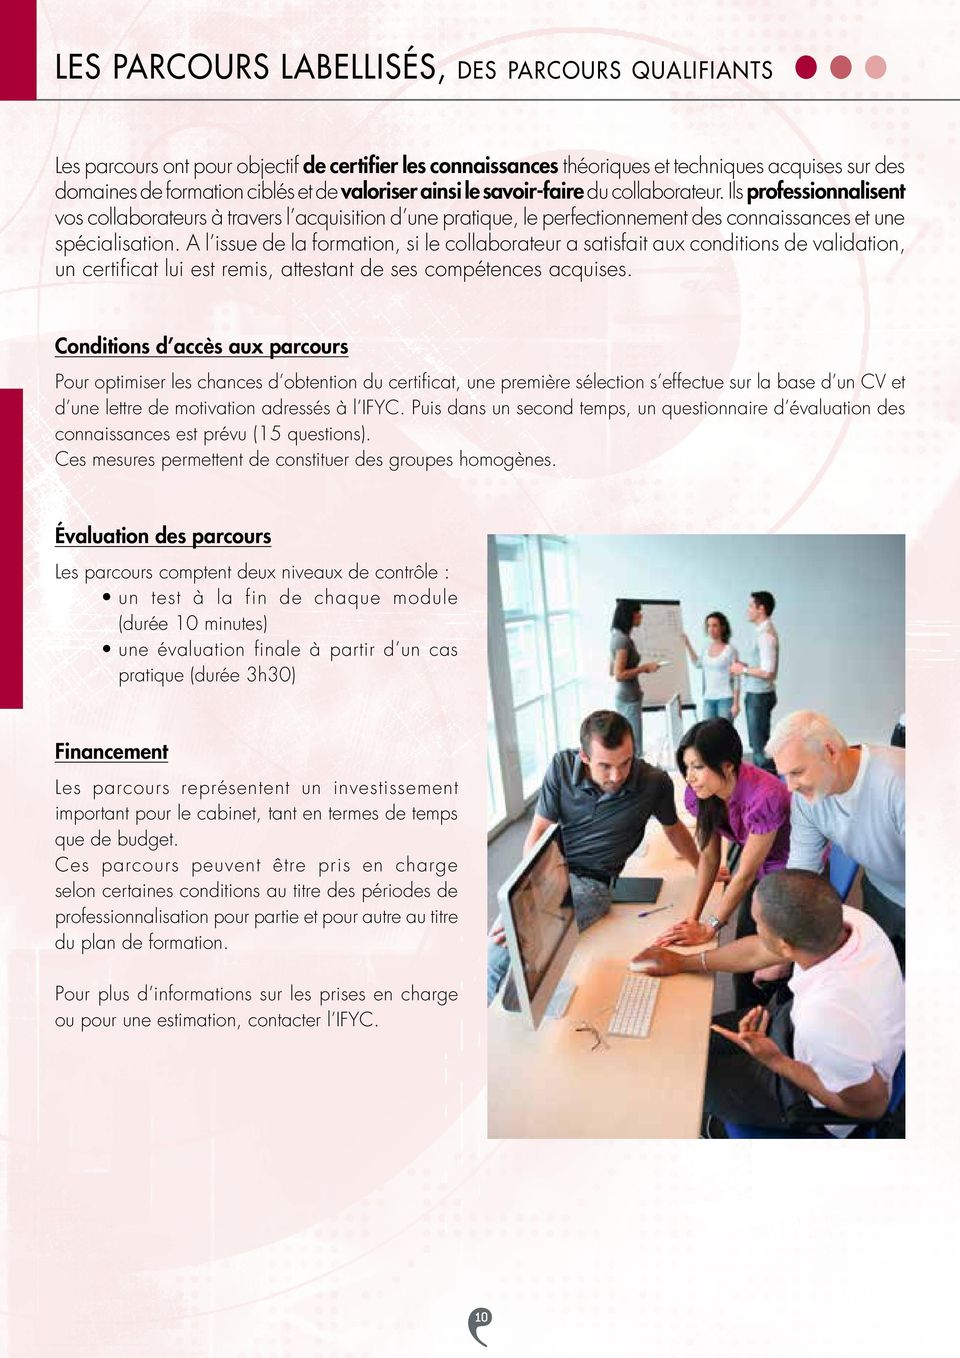 A l issue de la formation, si le collaborateur a satisfait aux conditions de validation, un certificat lui est remis, attestant de ses compétences acquises.